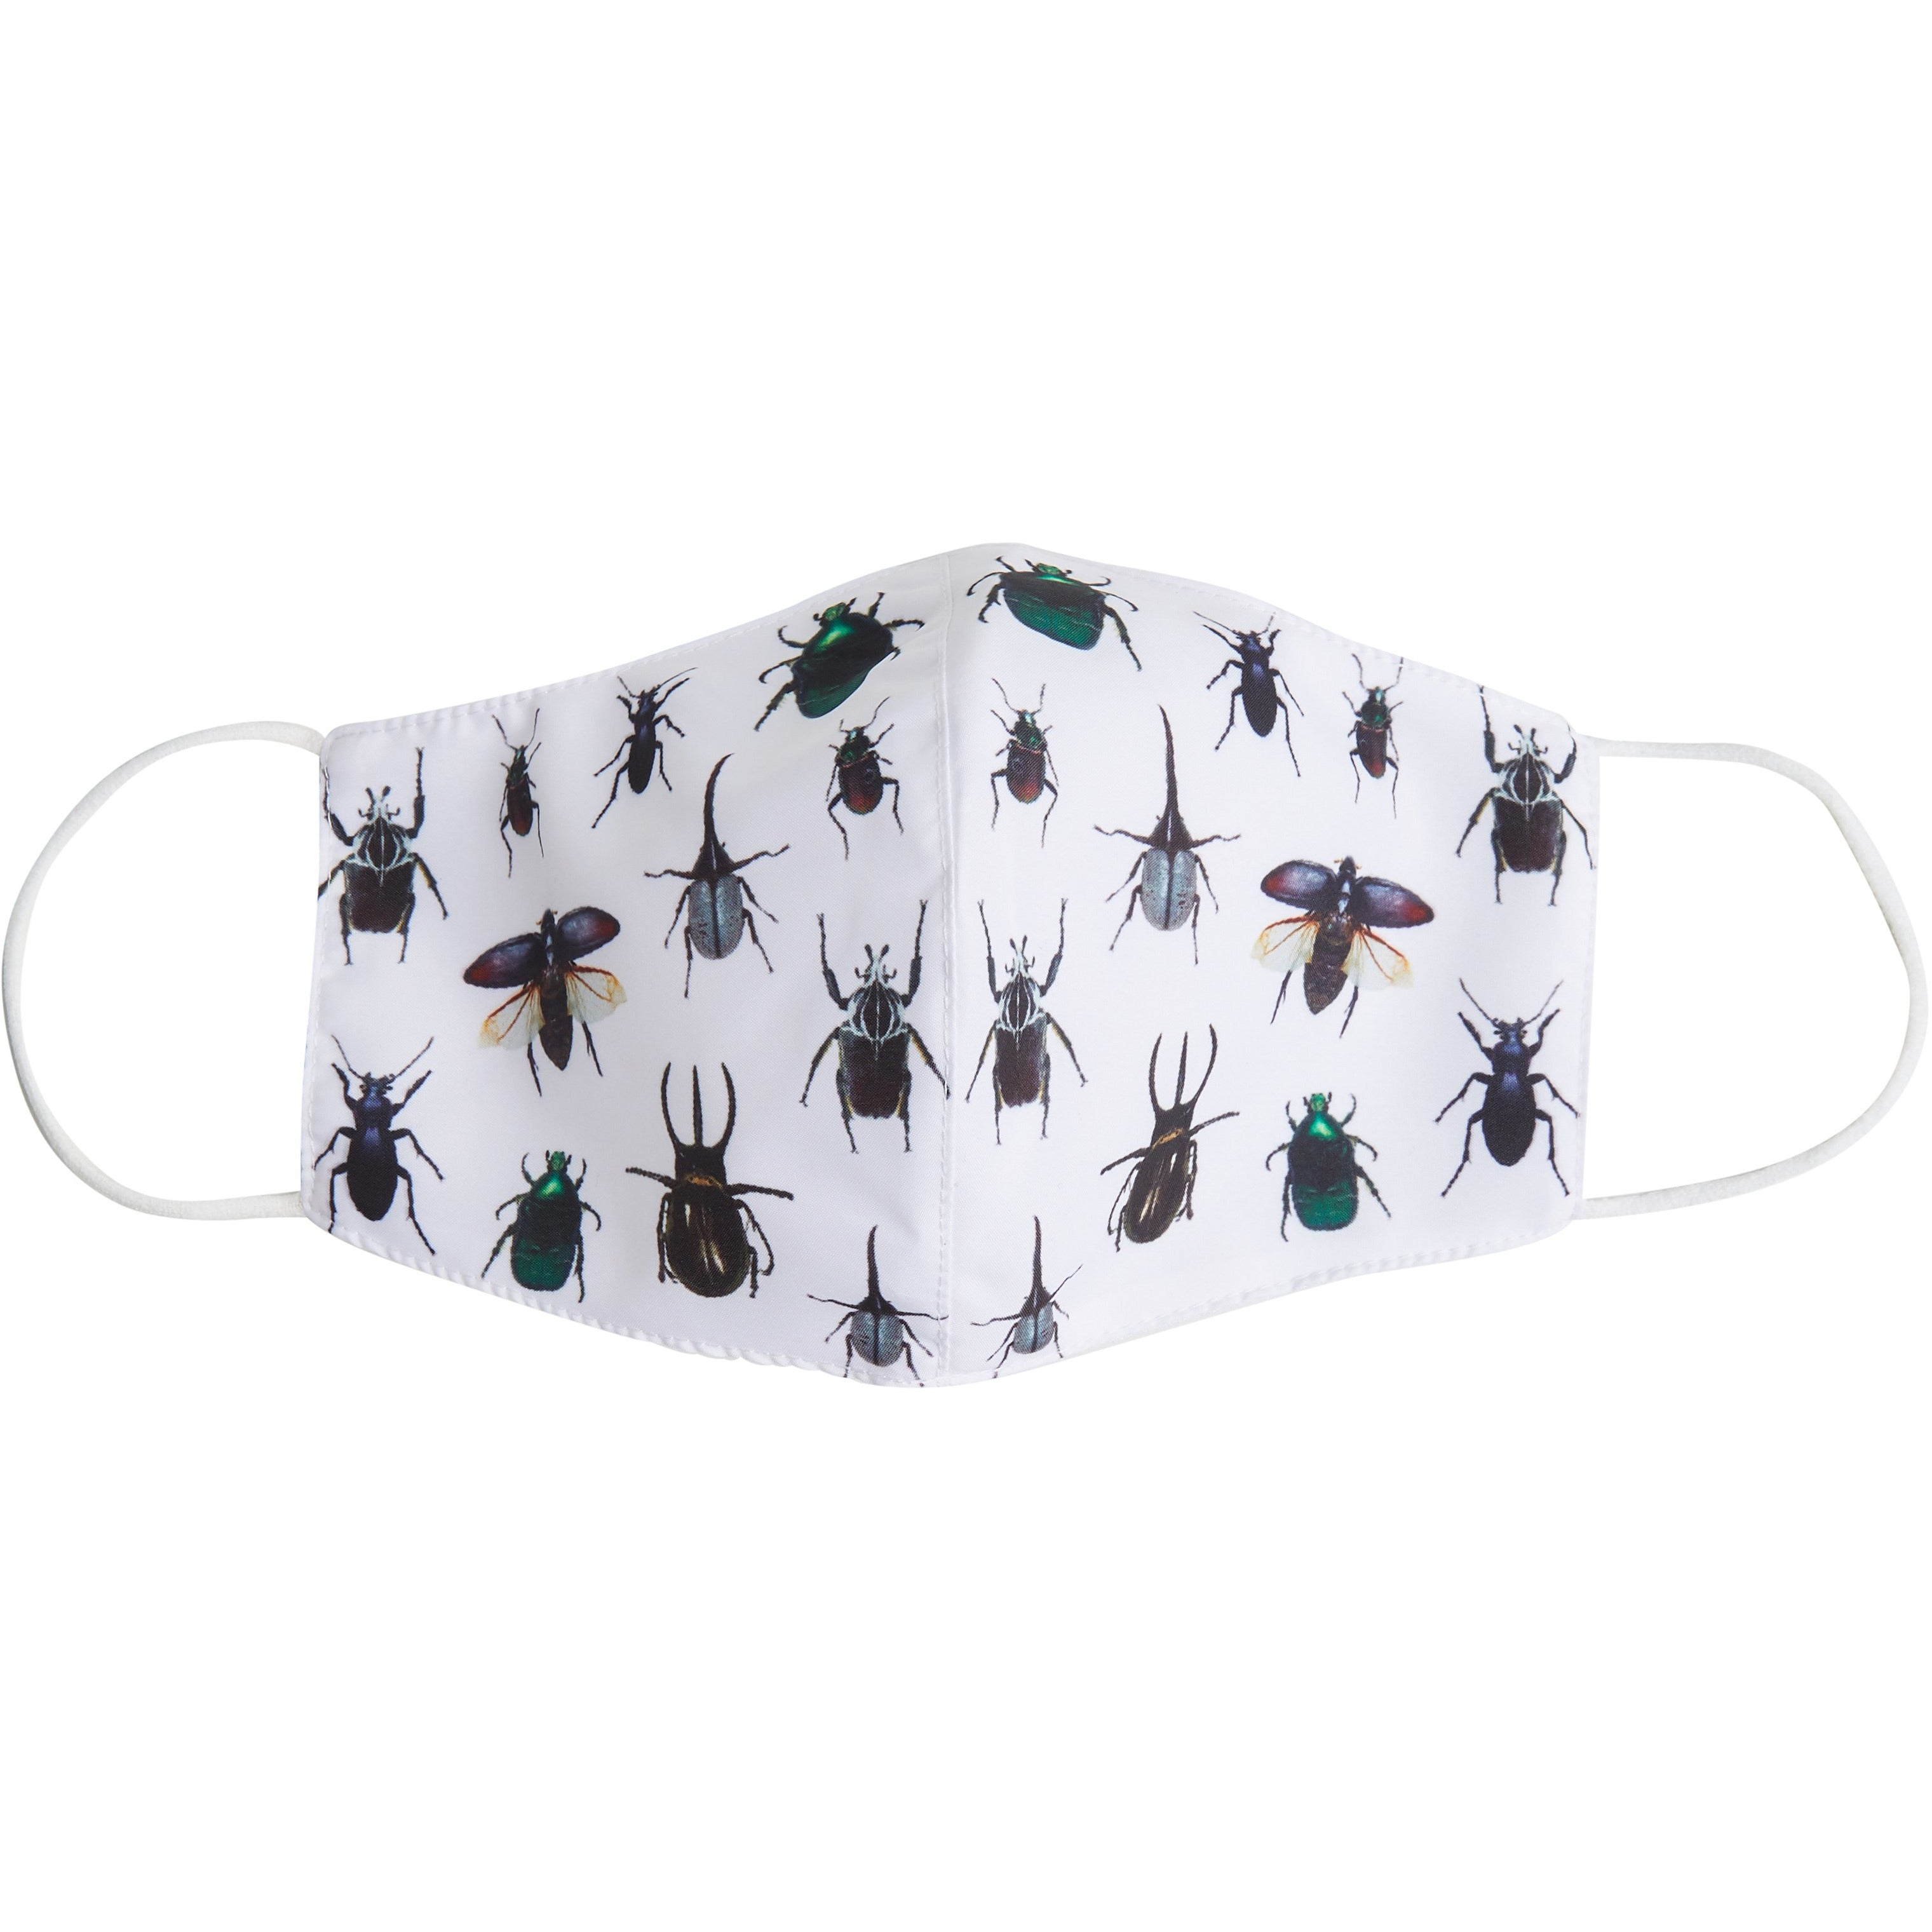 Featured image for the project: Zoology Beetles - Face mask